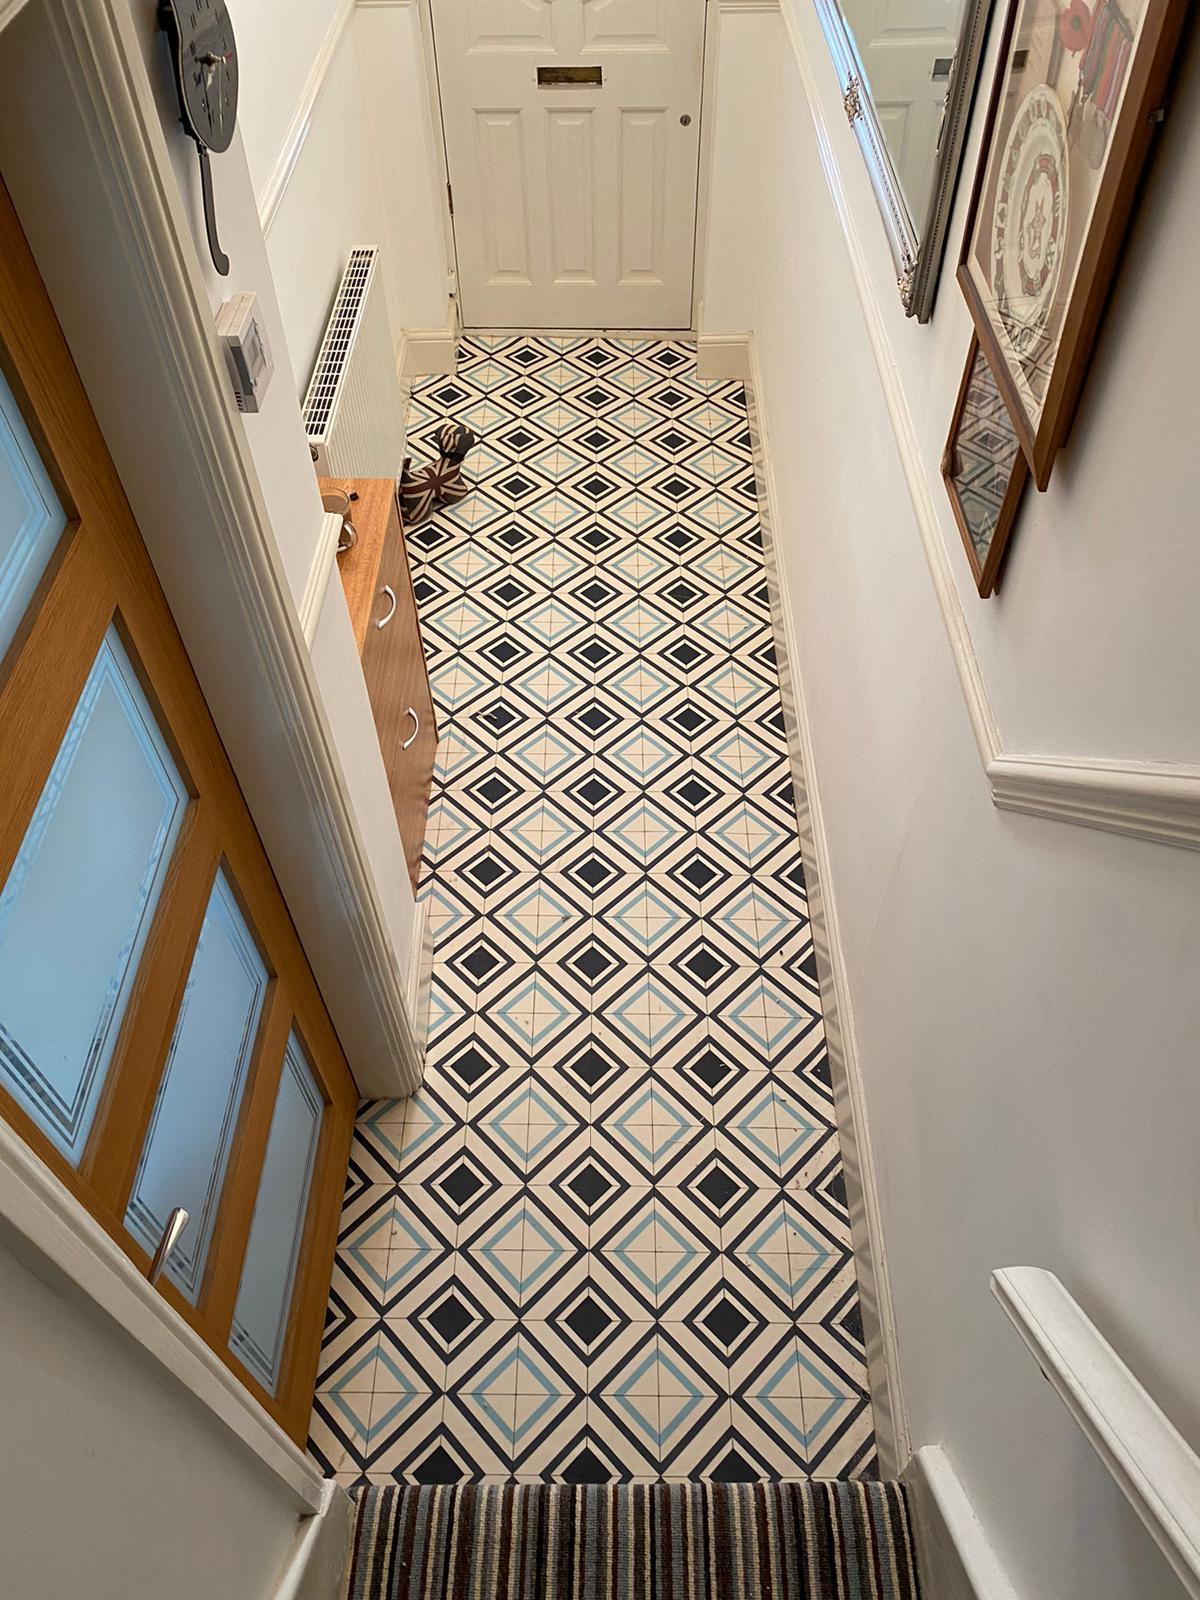 Cushion floor vinyl to hall and carpet to stairs